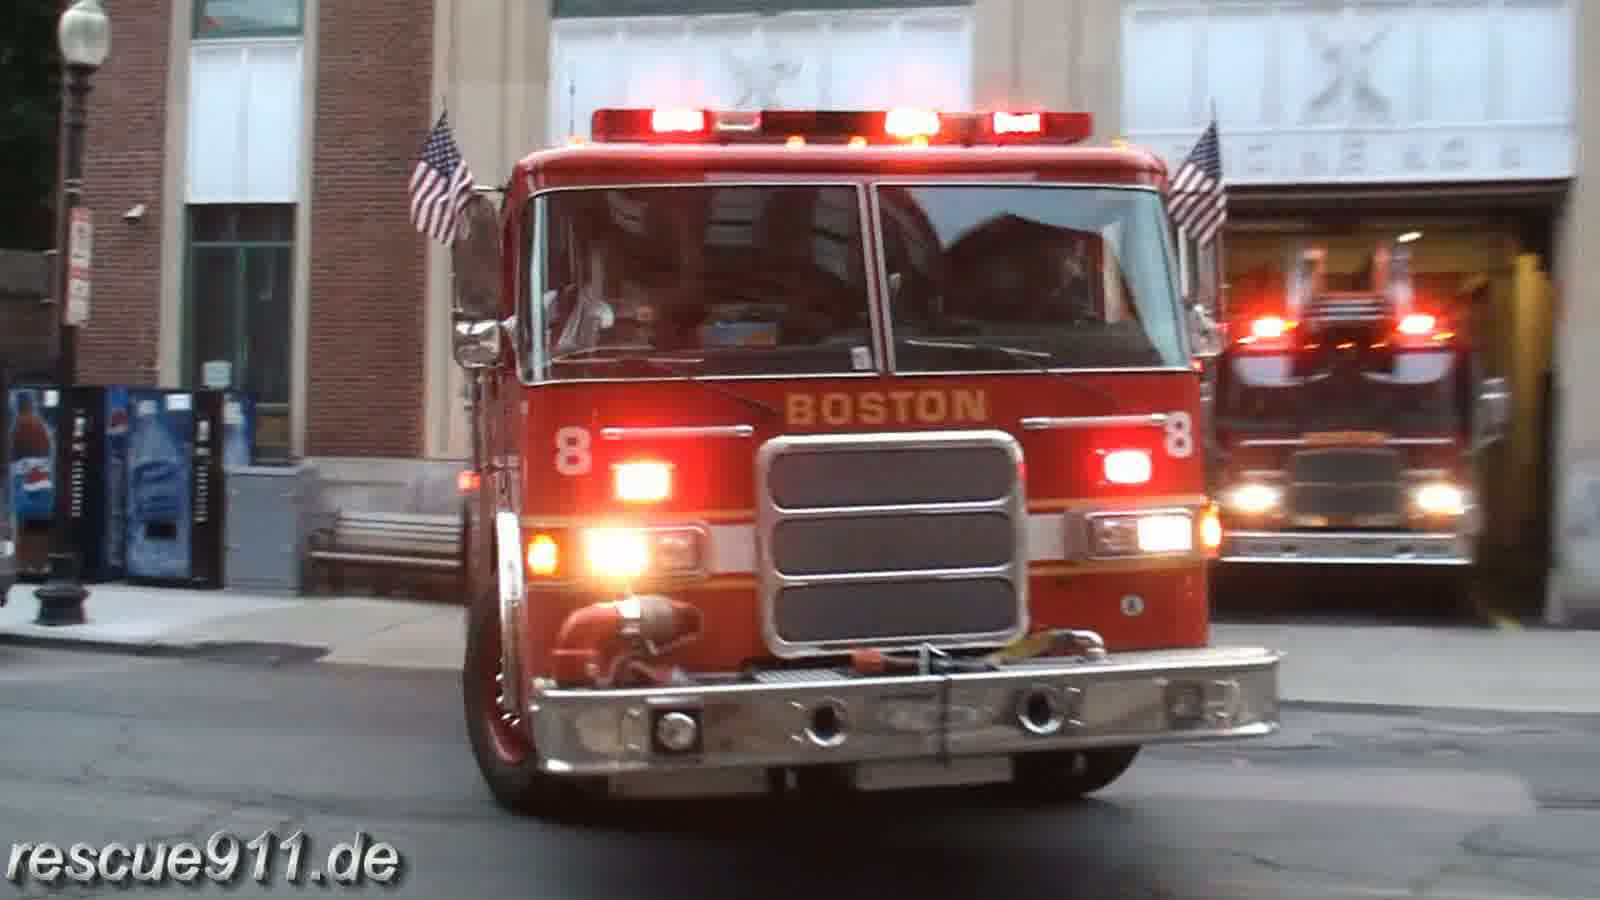 Engine 8 + Ladder 1 Boston Fire Department (stream)